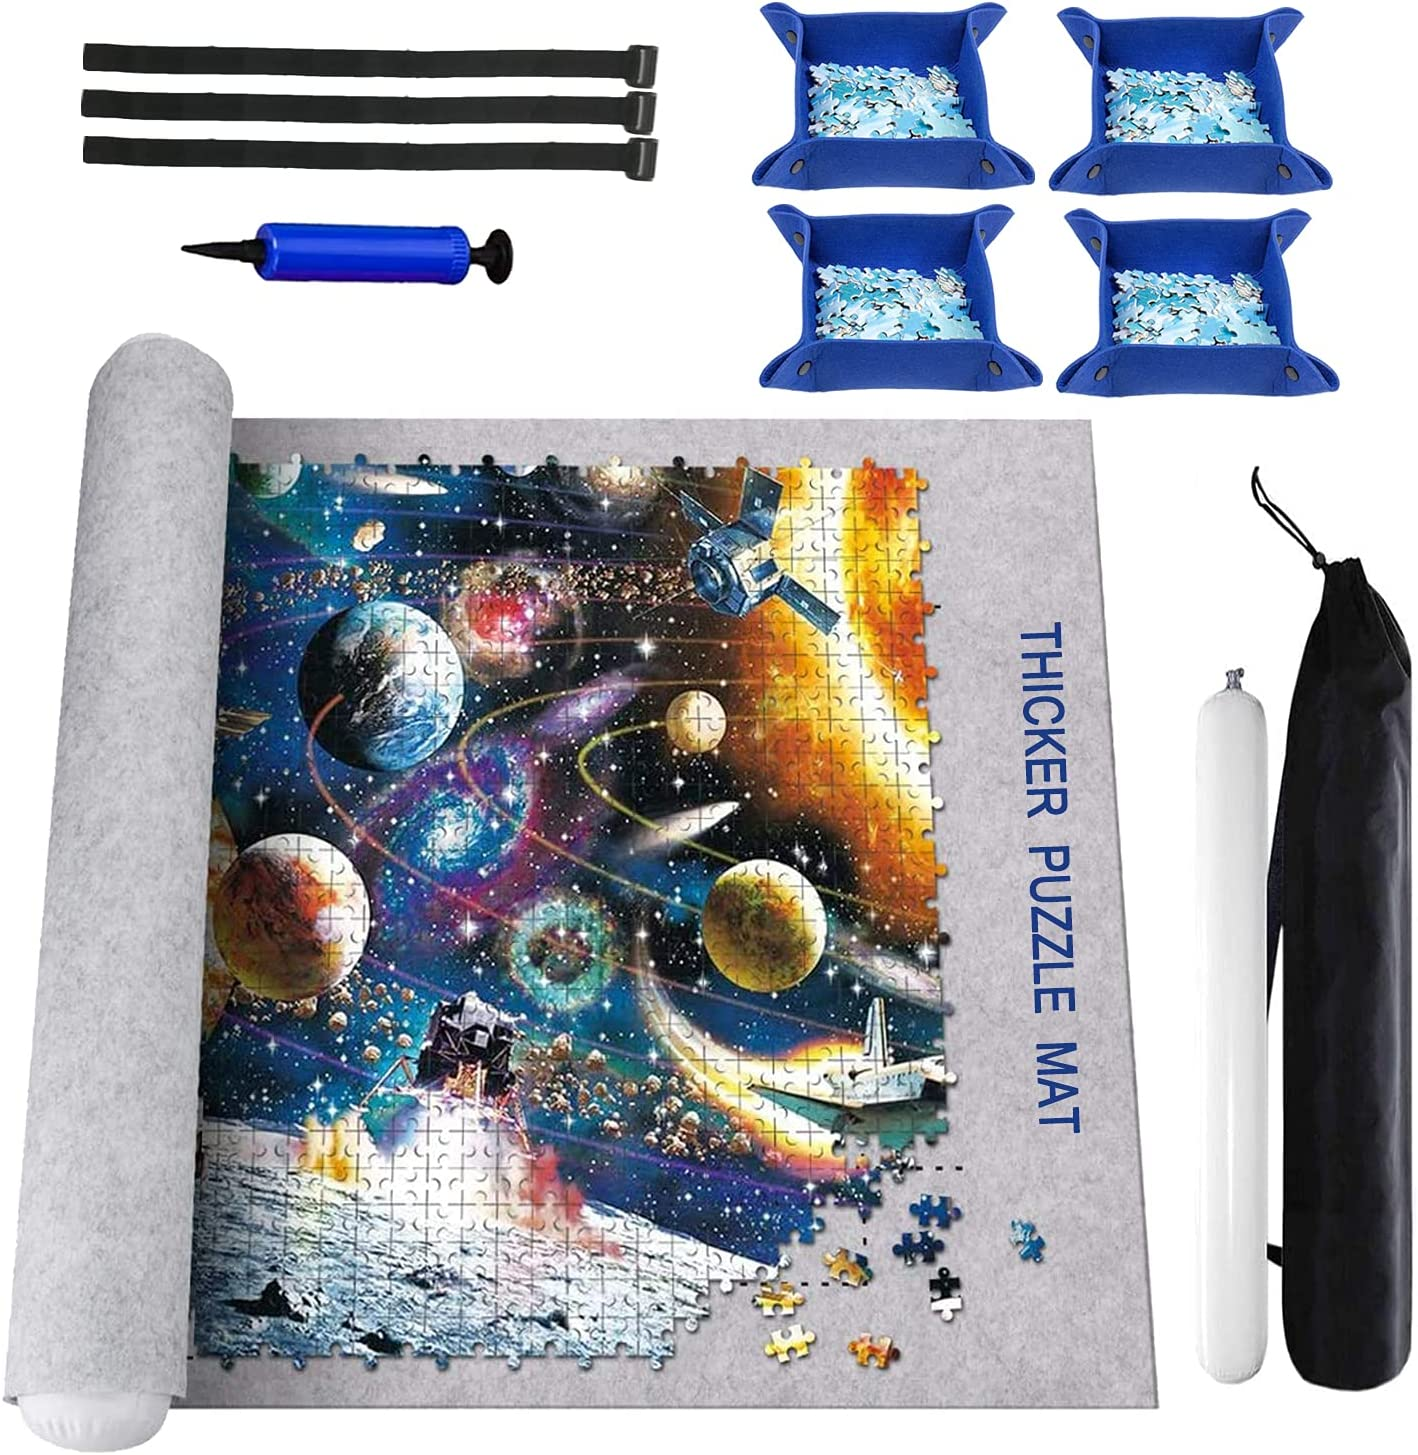 Puzzle Mat Roll Up 2000 Pieces, Puzzle Sorting Trays x 4, Puzzle Roll Up Mat Puzzle Saver Jigsaw Puzzle Mat Puzzle Board Mat Puzzle Mats Puzzle Mat 1000 Pieces Puzzle Mat Roll Up: Toys & Games